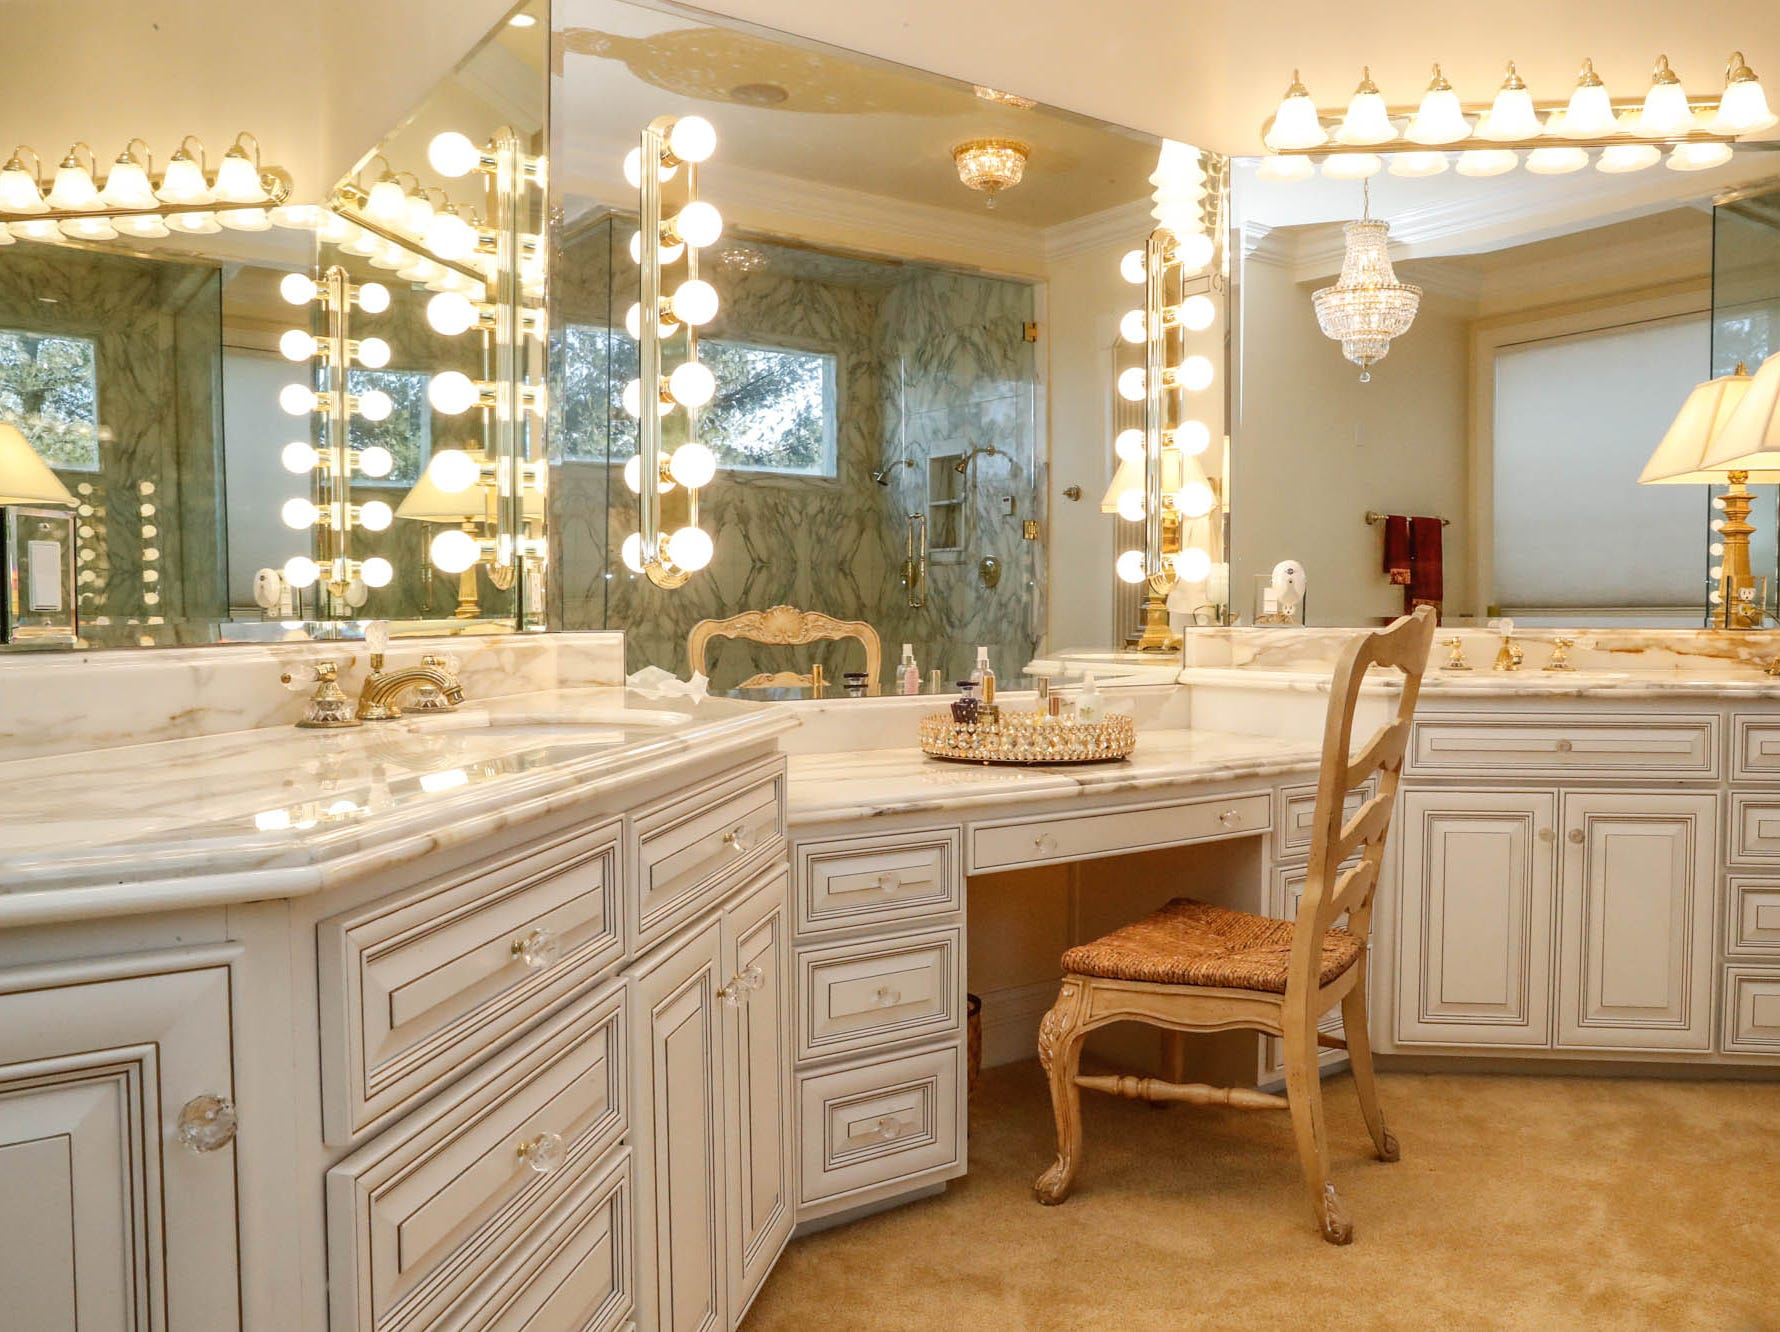 A first-floor master bath, one of two in the home, features vanity lighting, gold accents, a whirlpool tub, and all the storage space you could ask for, at a Greenwood home up for sale at 1216 Stone Ridge Court, Greenwood, Ind. on Wednesday, Jan. 30, 2019. The home features 8,234 square feet, four bedrooms, two master suites, a 10 car garage, and an exercise room.